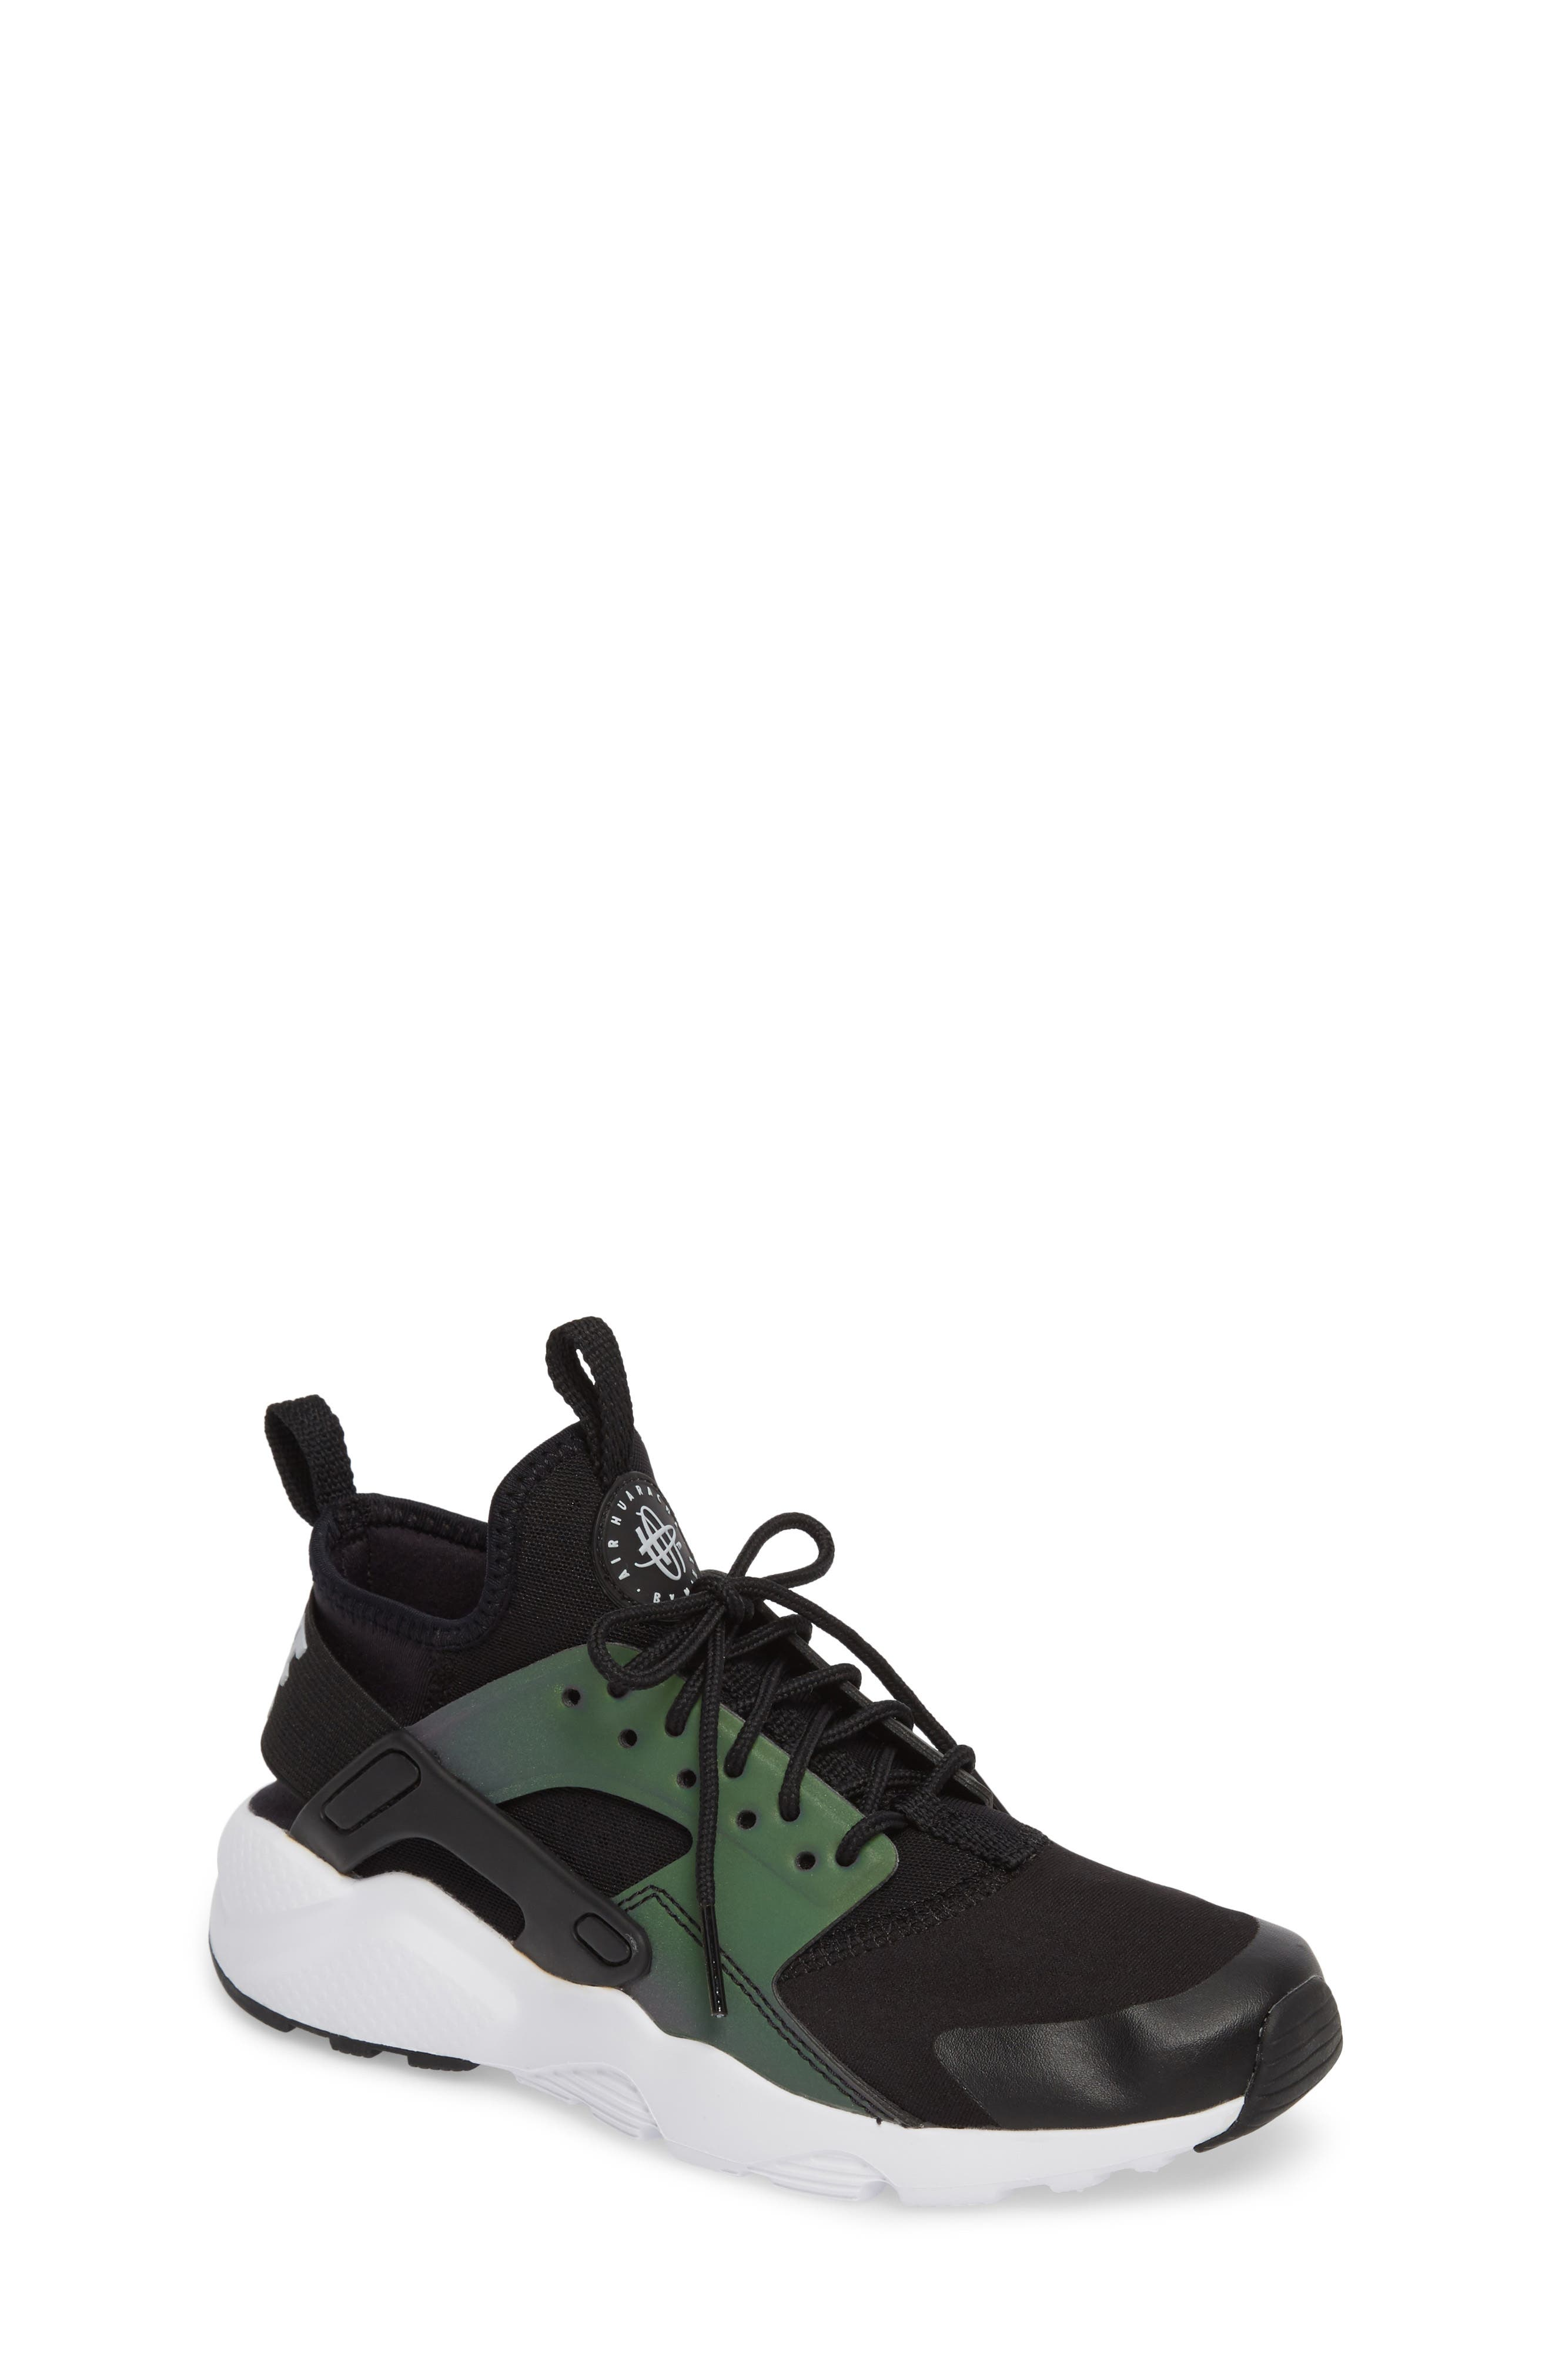 Air Huarache Run SE Sneaker,                         Main,                         color, Black/ Wolf Grey-White